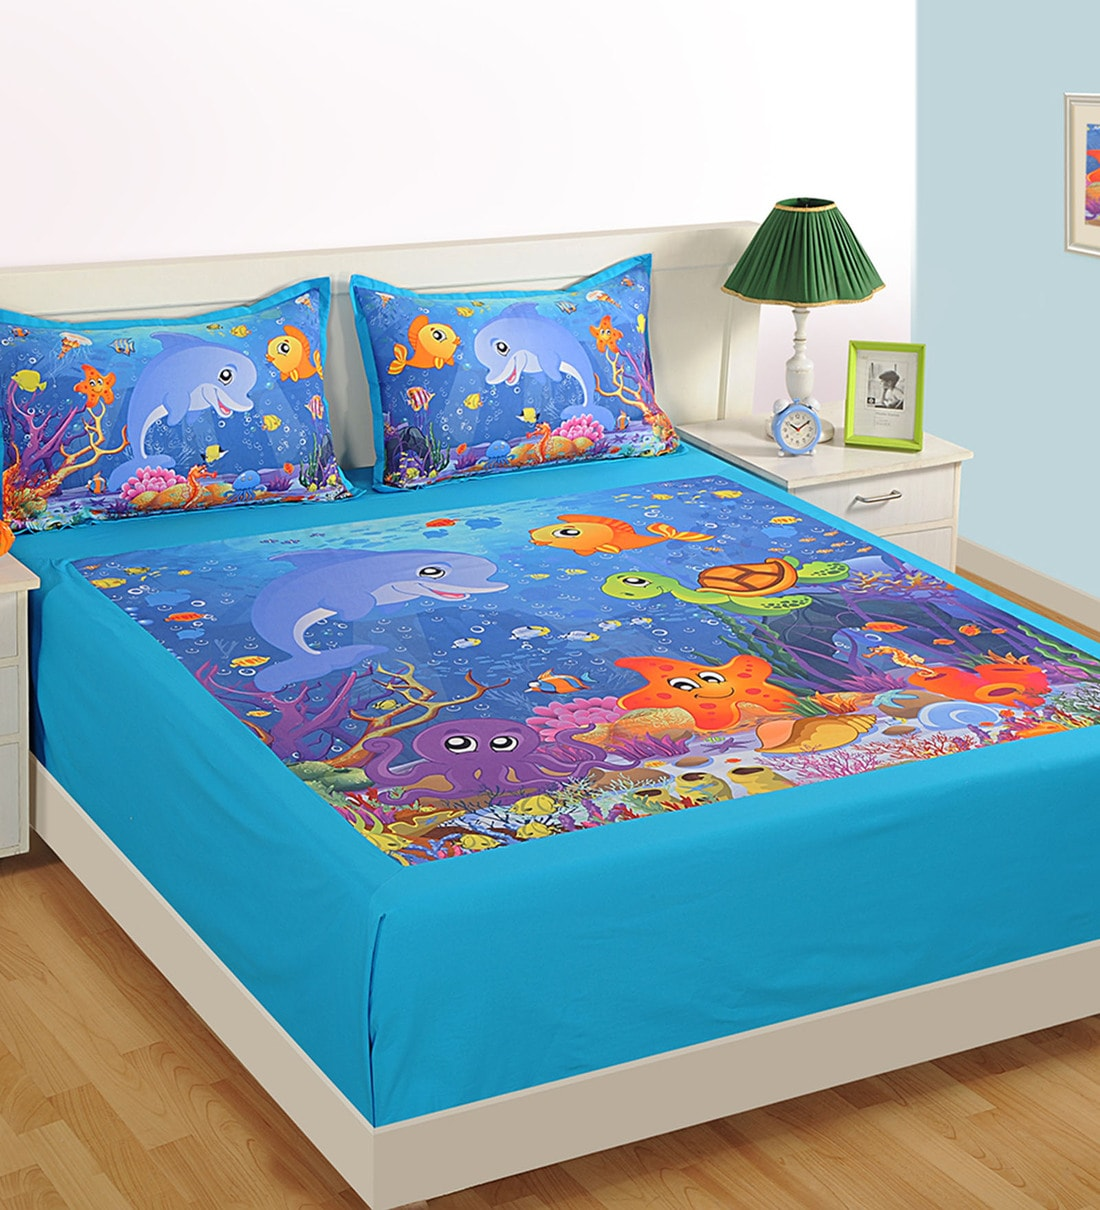 aqua themed double bed sheet with 2 pillow covers in blue colour